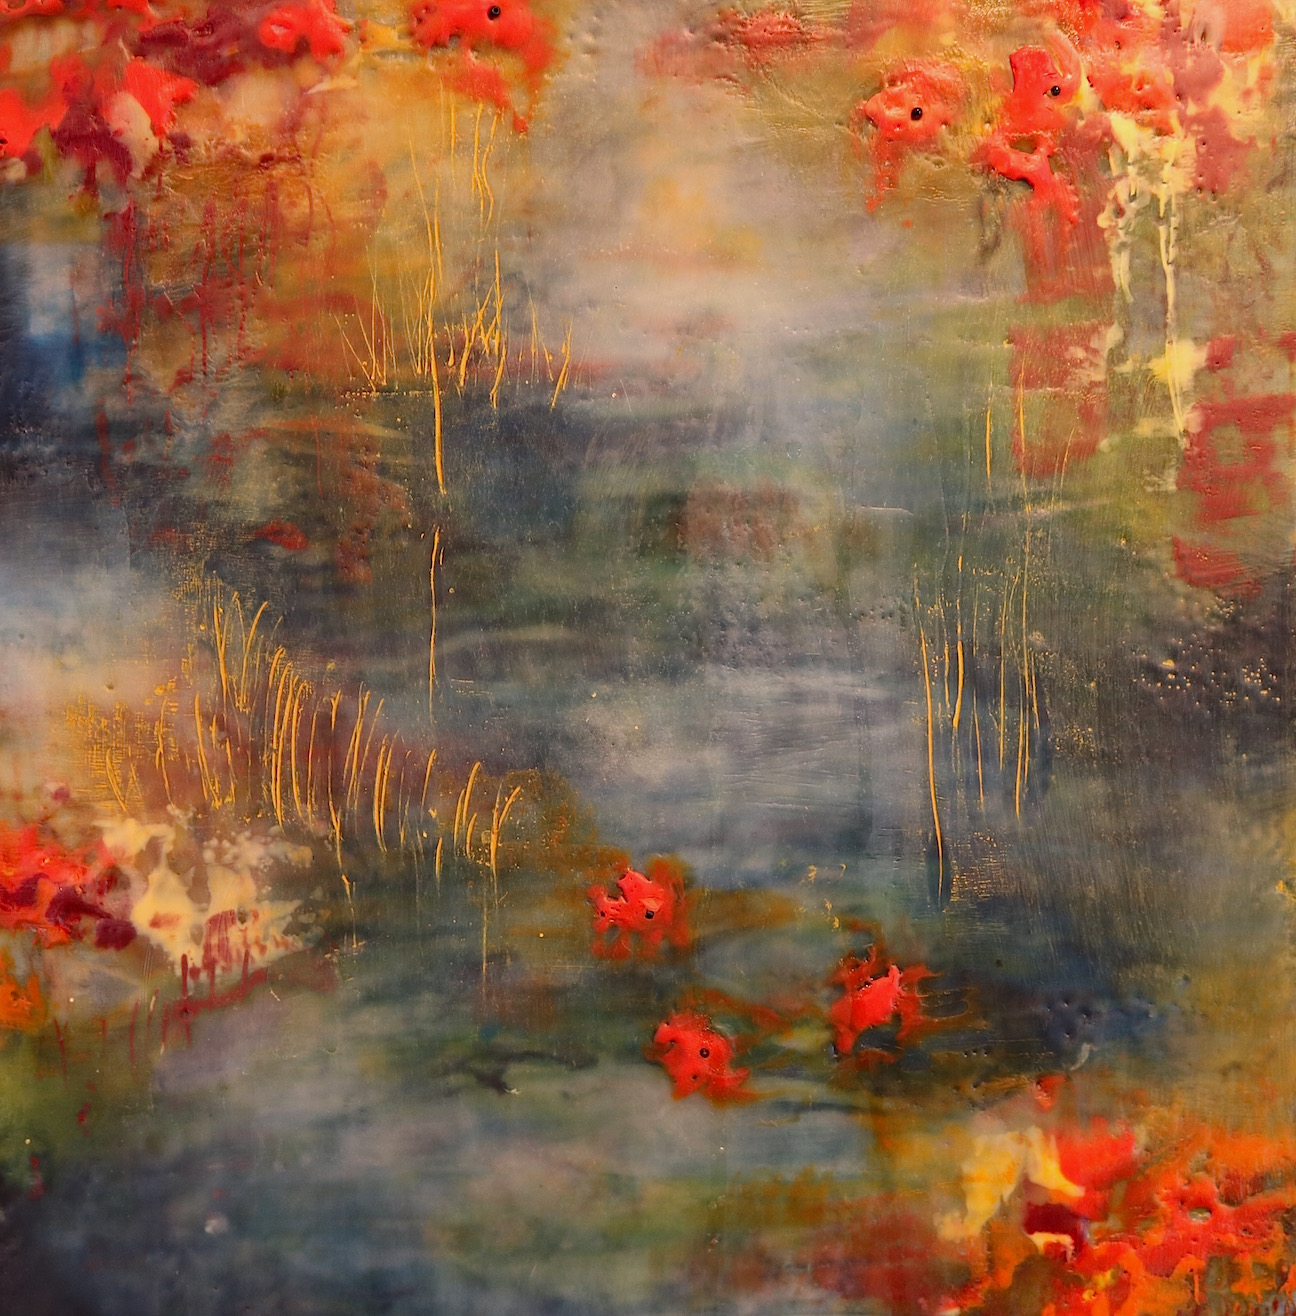 A detail from my latest encaustic painting in the 'Pond' series.